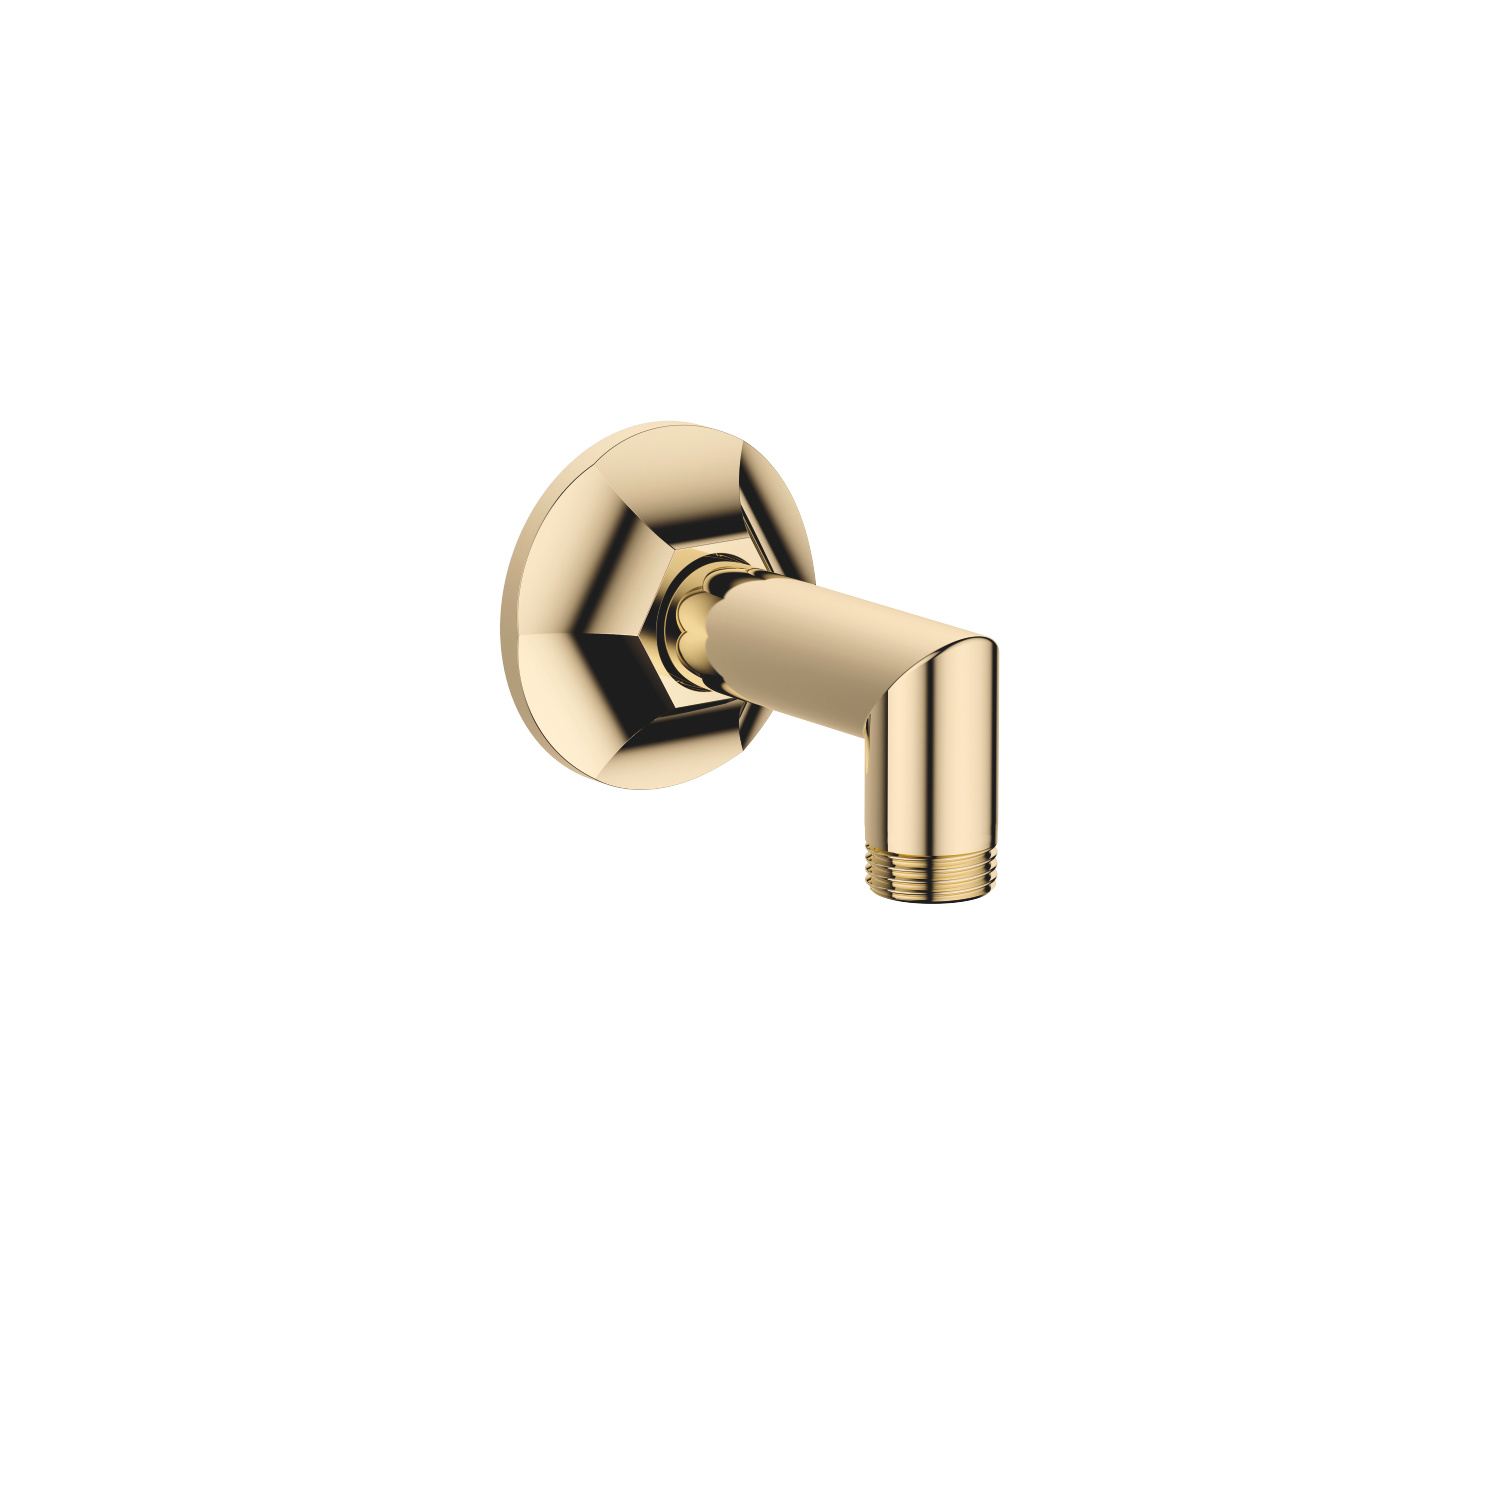 Wall elbow - Durabrass